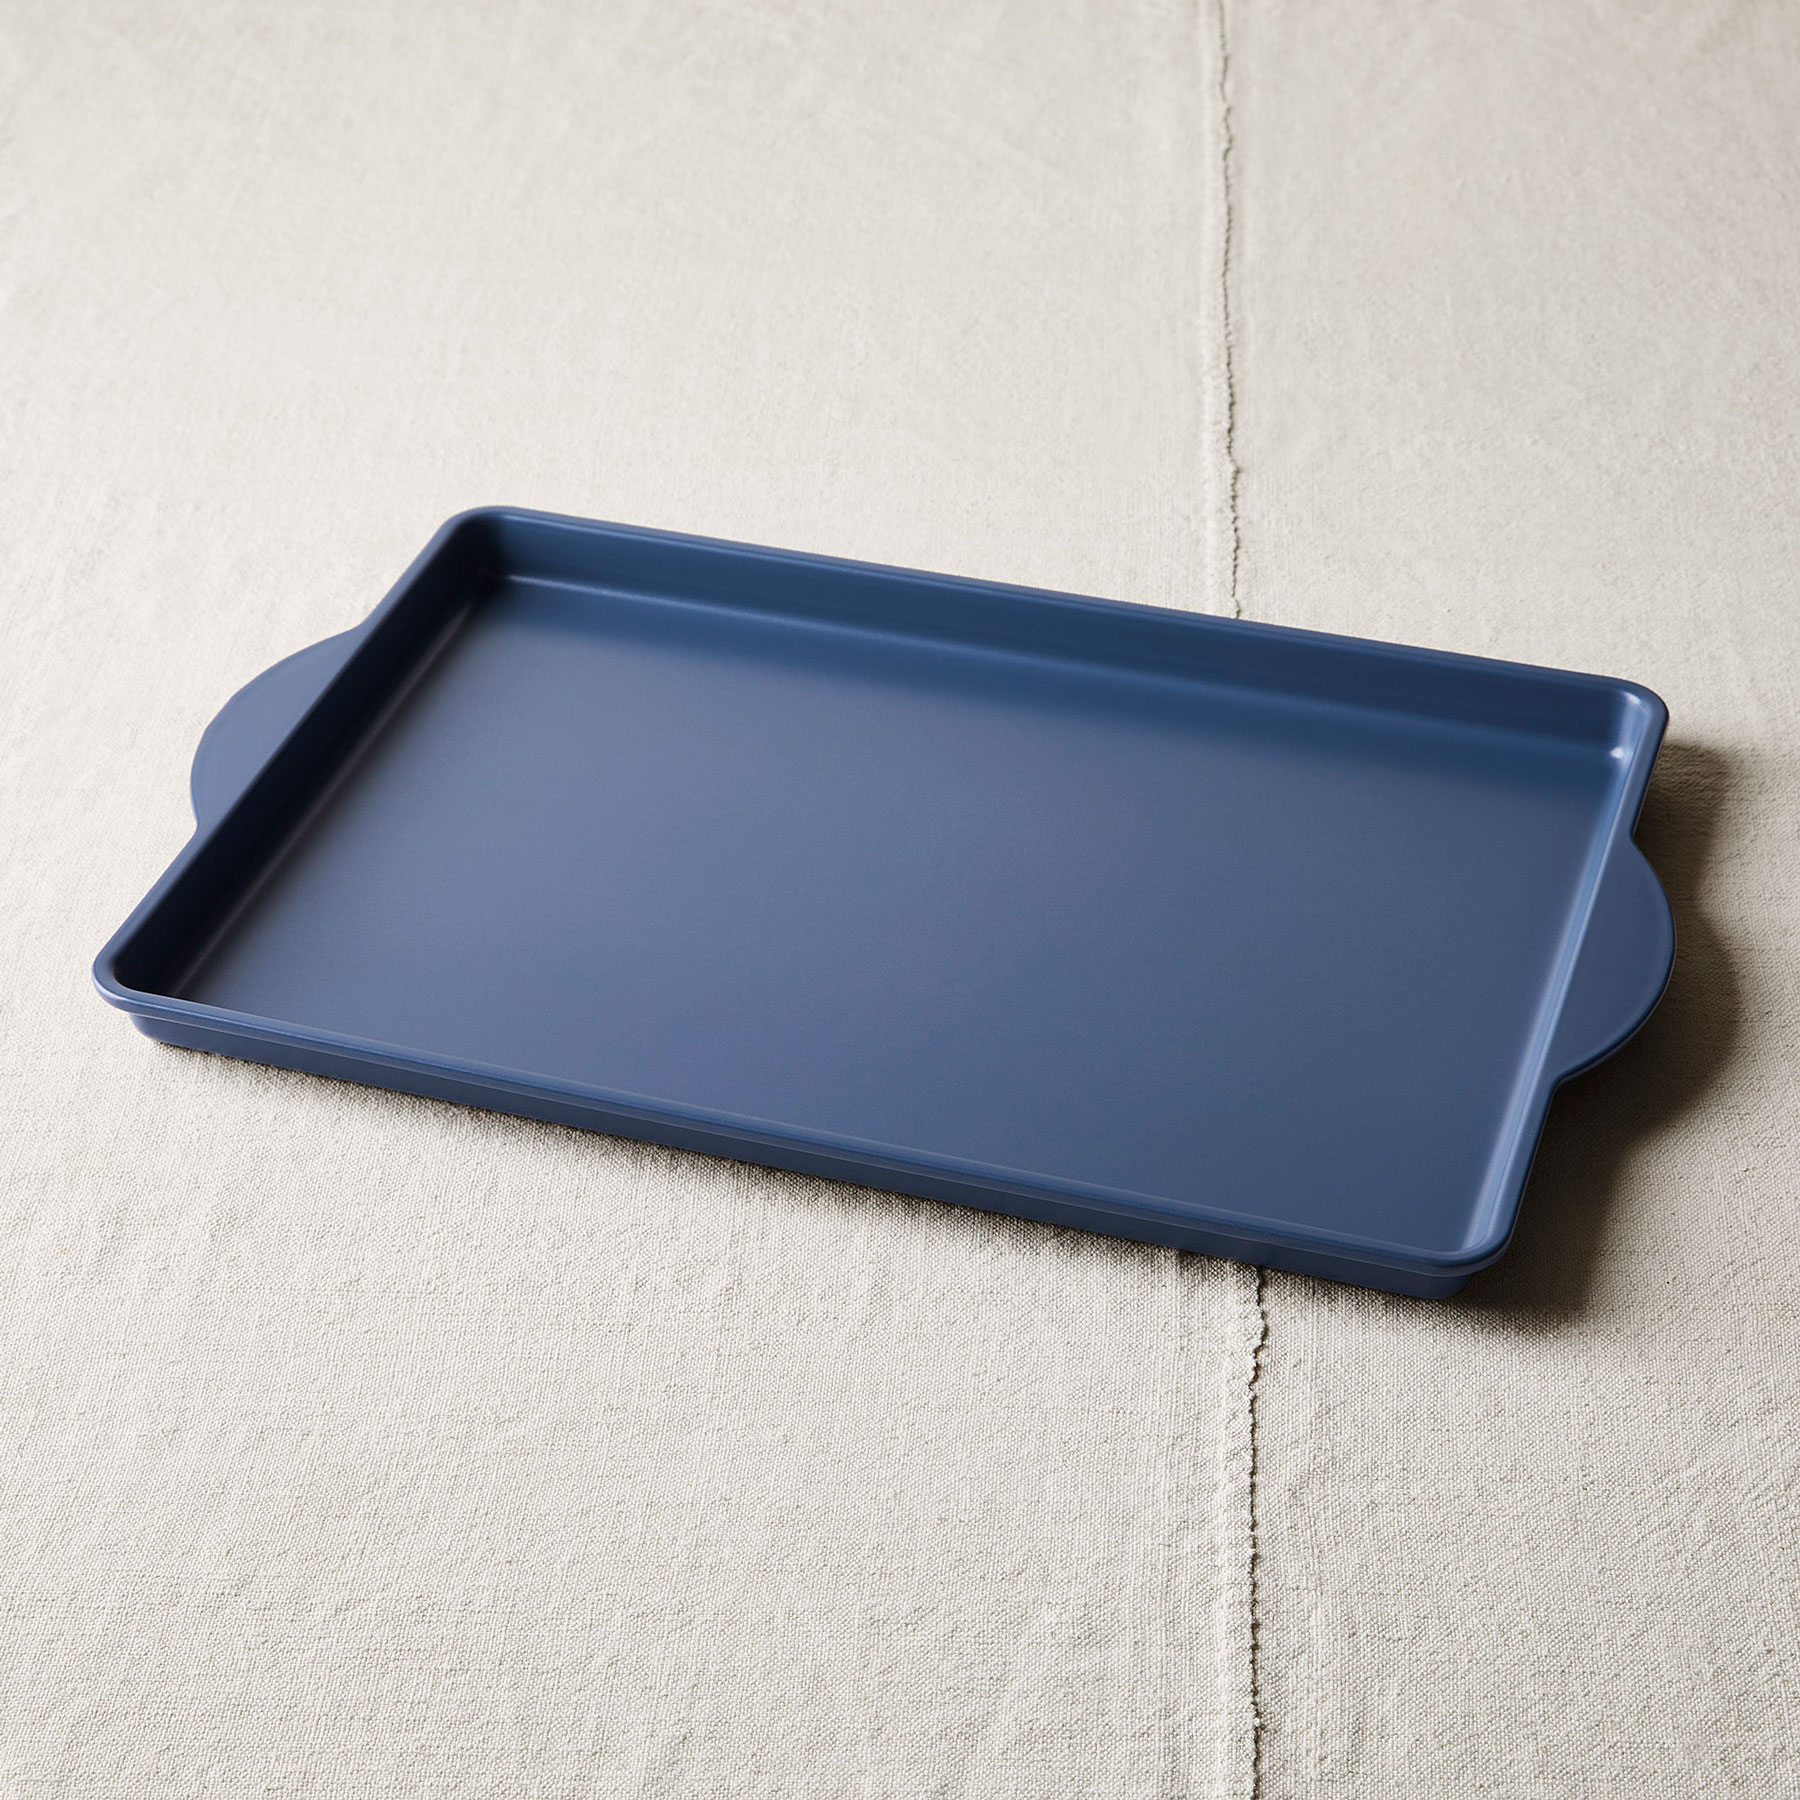 Best Christmas gifts 2020 - Food52 Five Two Essential Sheet Pan